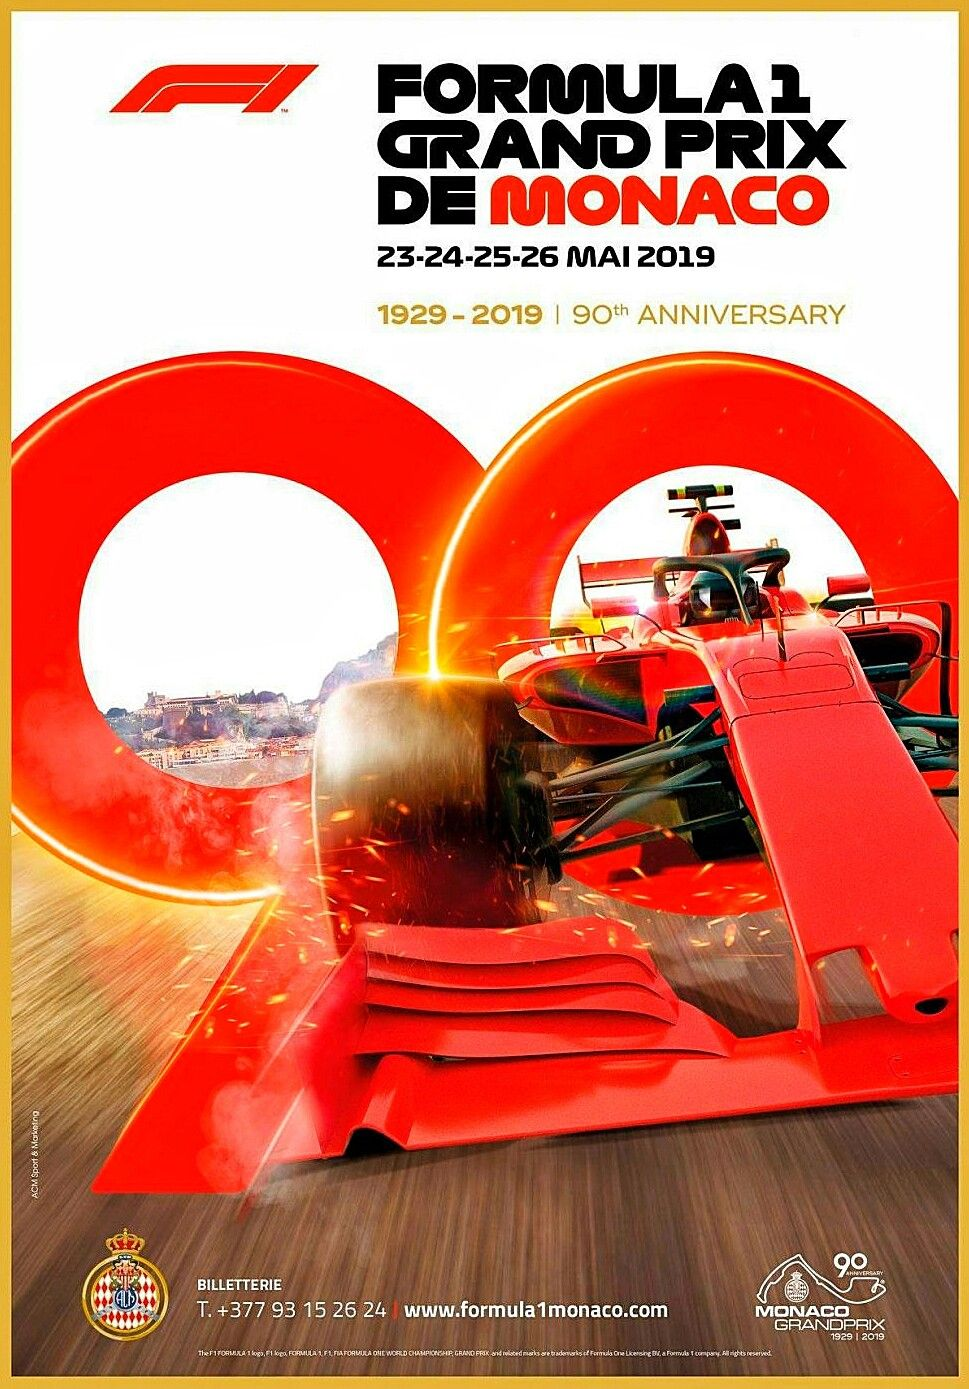 2019 Monaco Gp Official F1 Poster The 90th Anniversary Poster For The Annual Running Of Formula 1 S Premier Race Features A Golden Edged 90 Year Logo Interwov